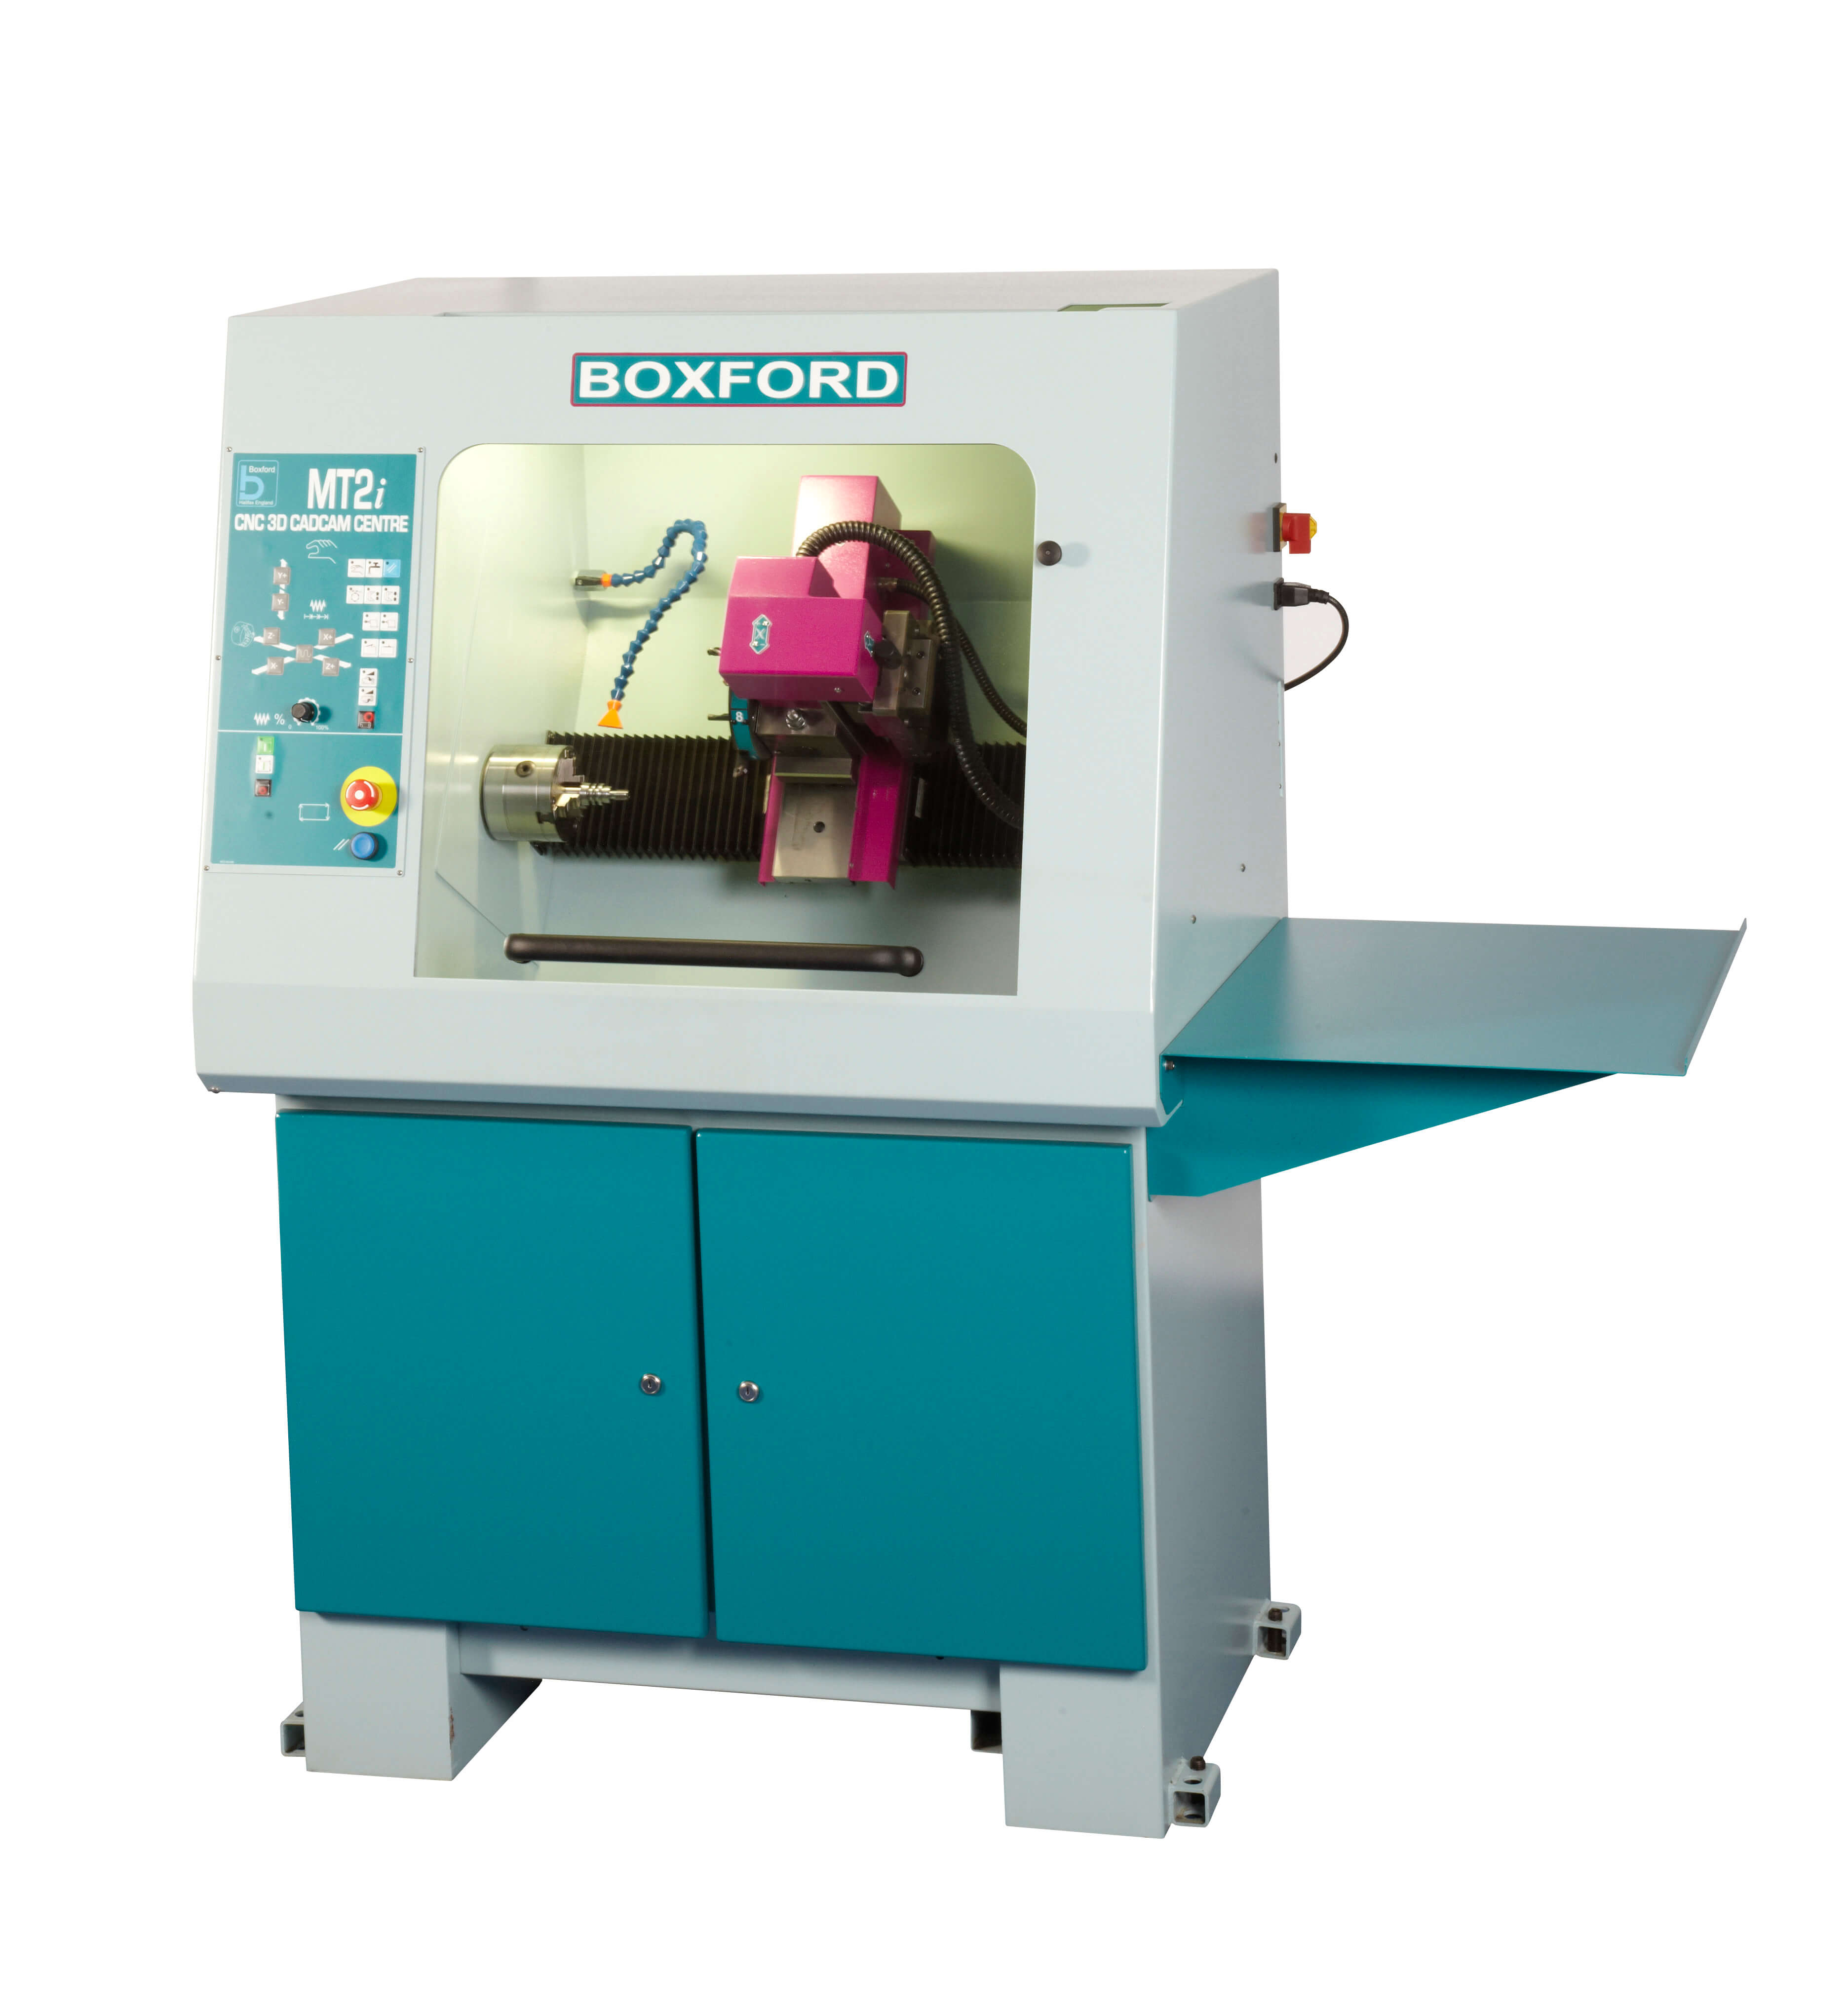 Boxford MT2i Floor Standing CNC Lathe and Mill Combination Machine